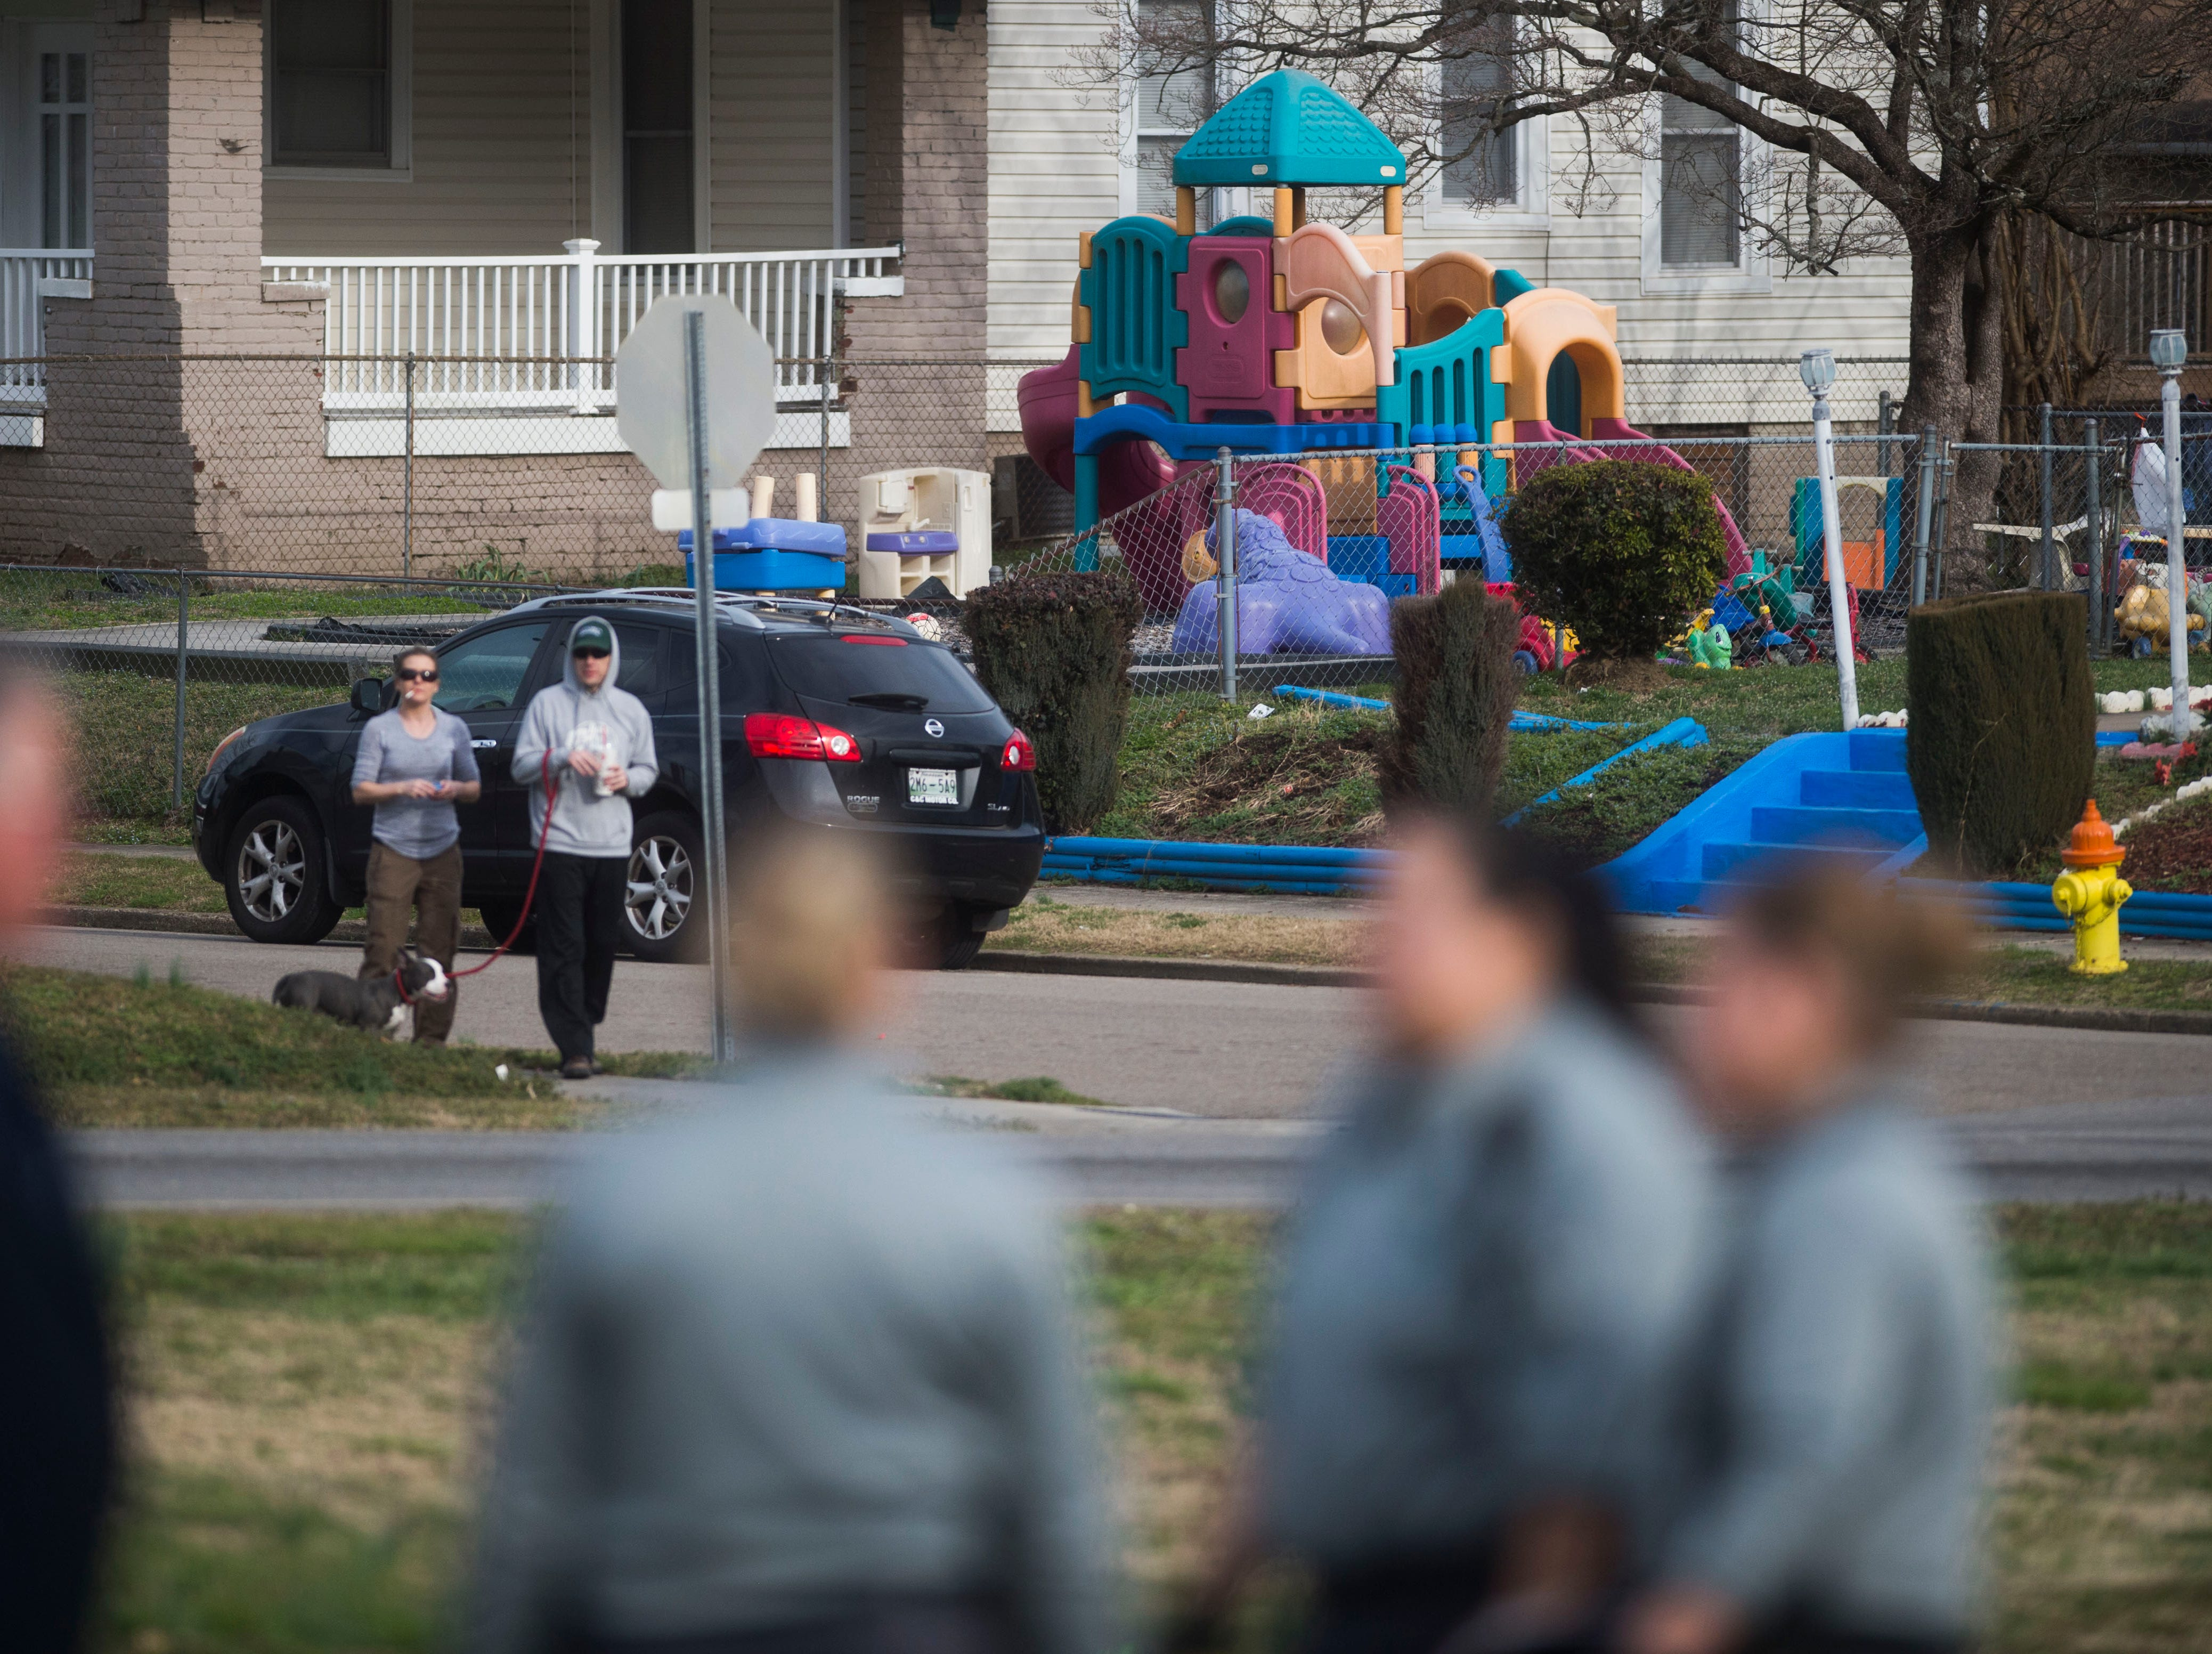 A child care facility is seen in the background as the Knoxville Police Department investigates a shooting near the Pilot gas station on East Magnolia in East Knoxville, Thursday, Feb. 14, 2019. One man was shot and the suspect is in custody.